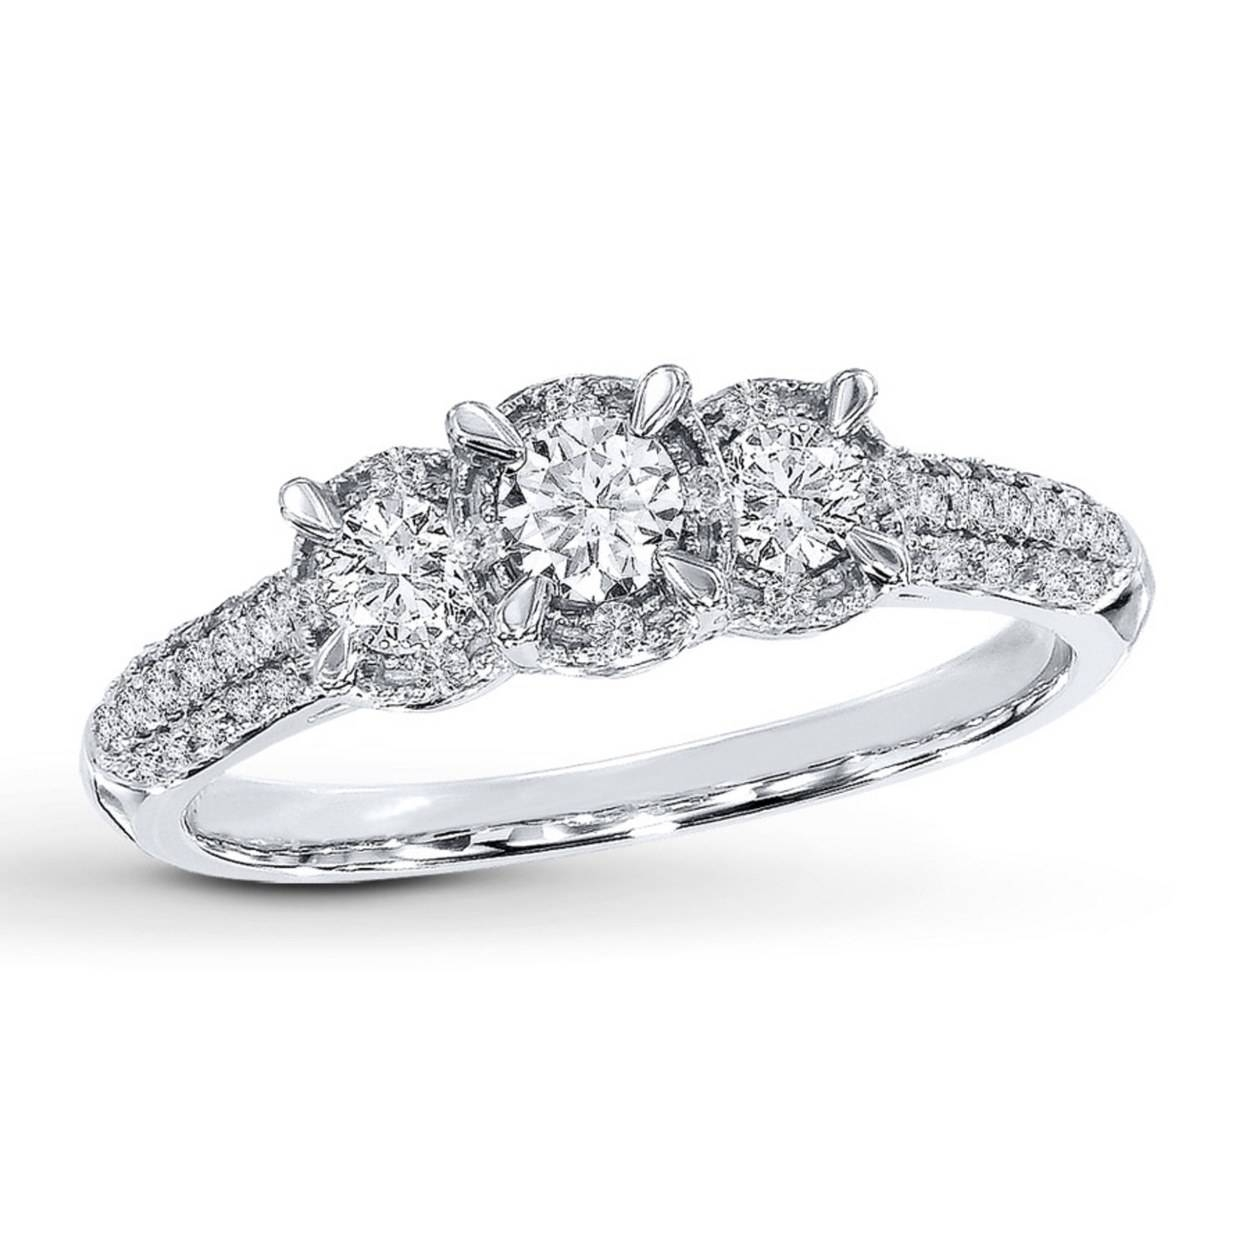 Affordable Engagement Rings Under $1,000 | Glamour With Engagement Rings Under (View 14 of 15)